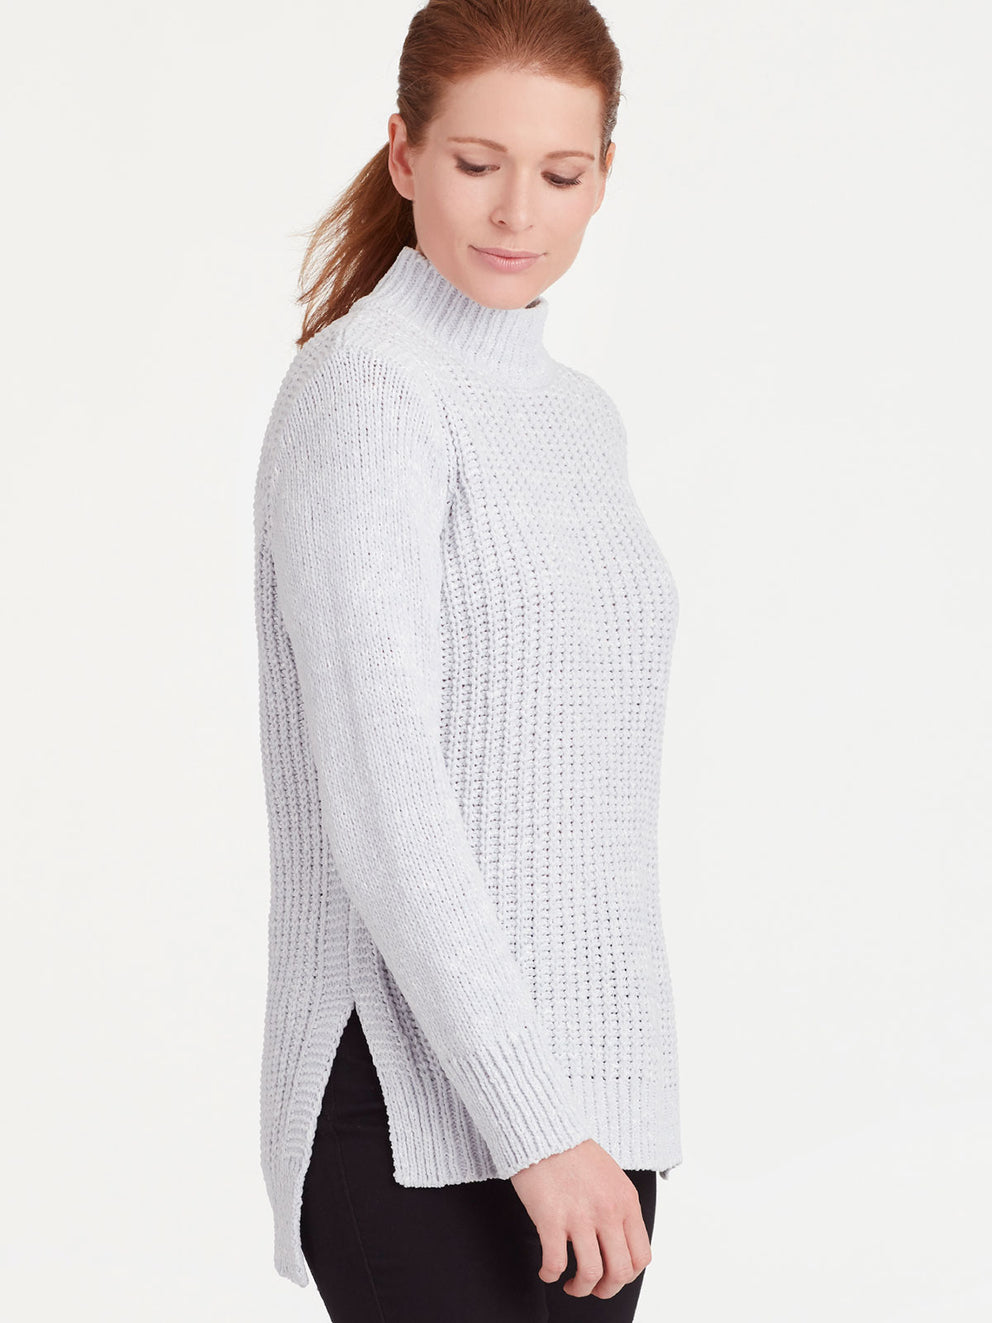 The Jones New York Chenille Mock Neck Top in color Silver Grey Heather - Image Position 2